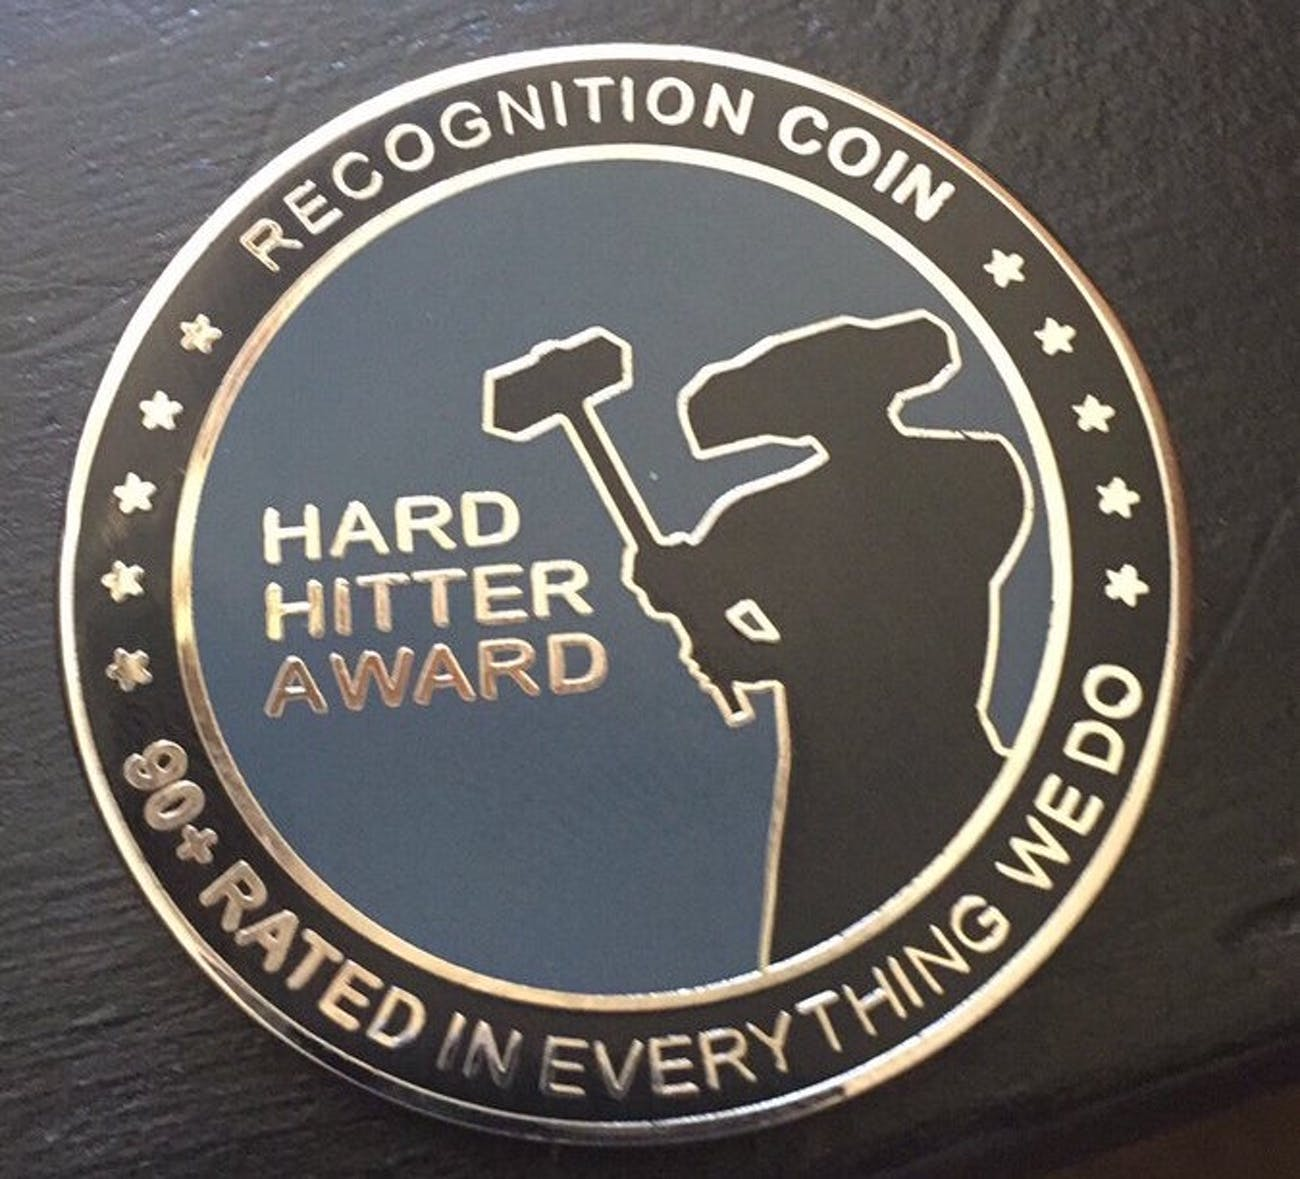 The Hard Hitter Award Challenge Coin.